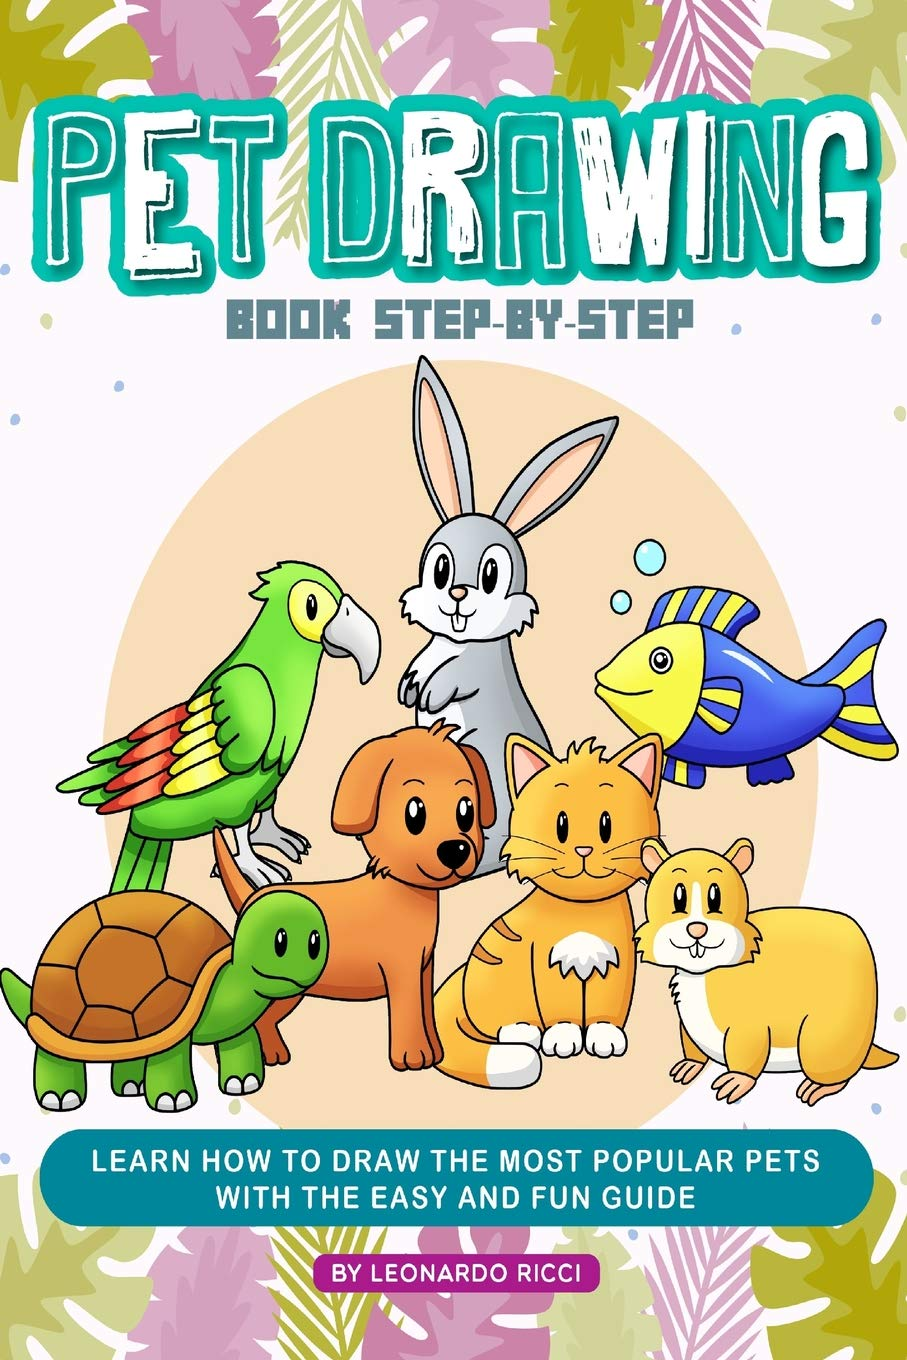 Download Pet Drawing Book Step-by-Step: Learn How to Draw the Most Popular Pets with the Easy and Fun Guide ebook